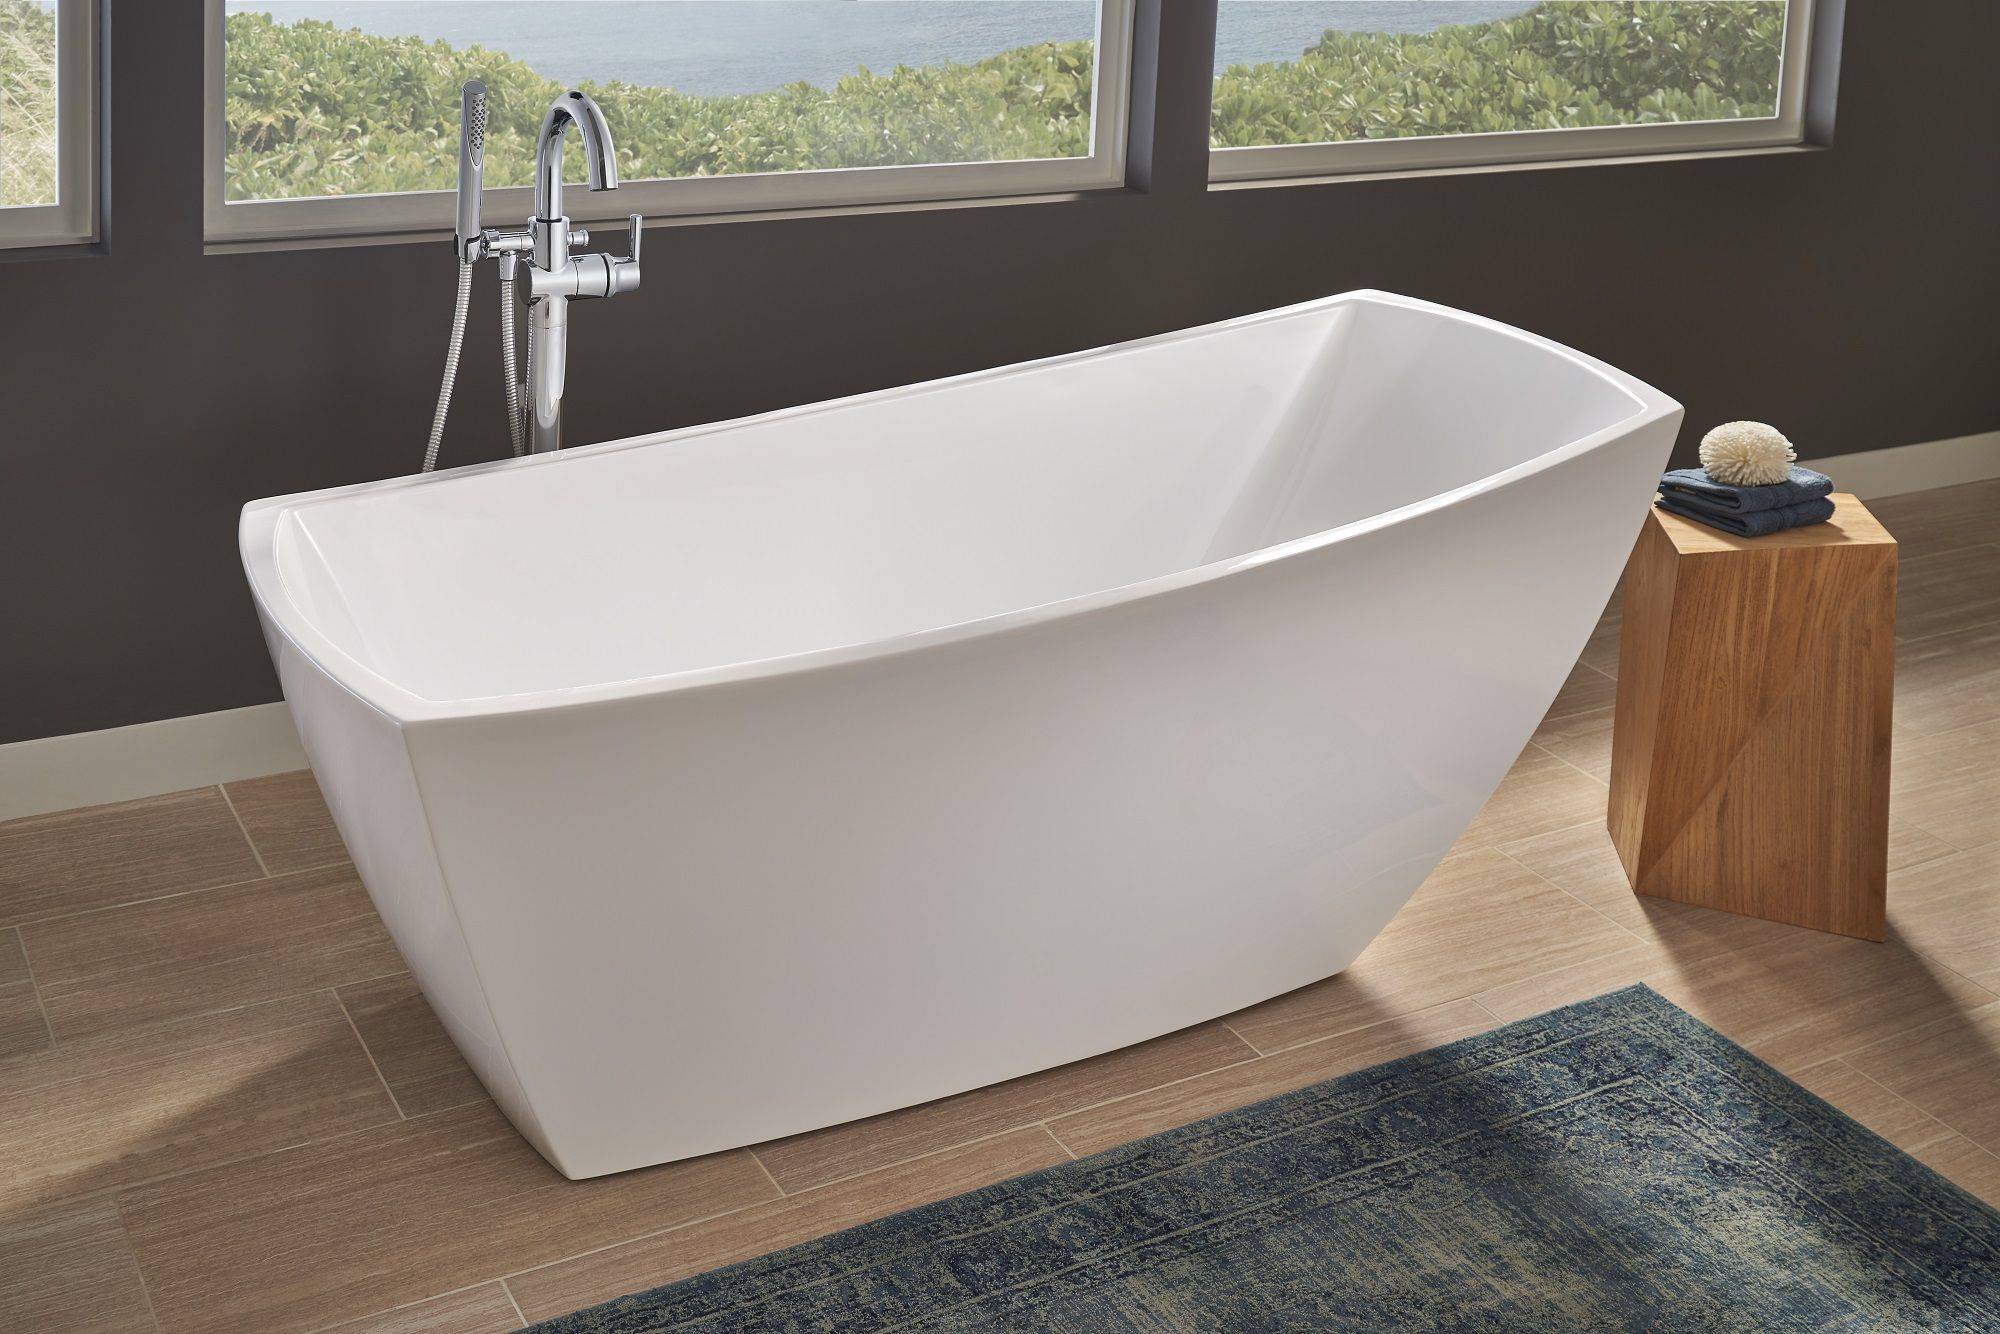 Jacuzzi Luxury Bath Stella Freestanding Tub | Freestanding bathtubs ...